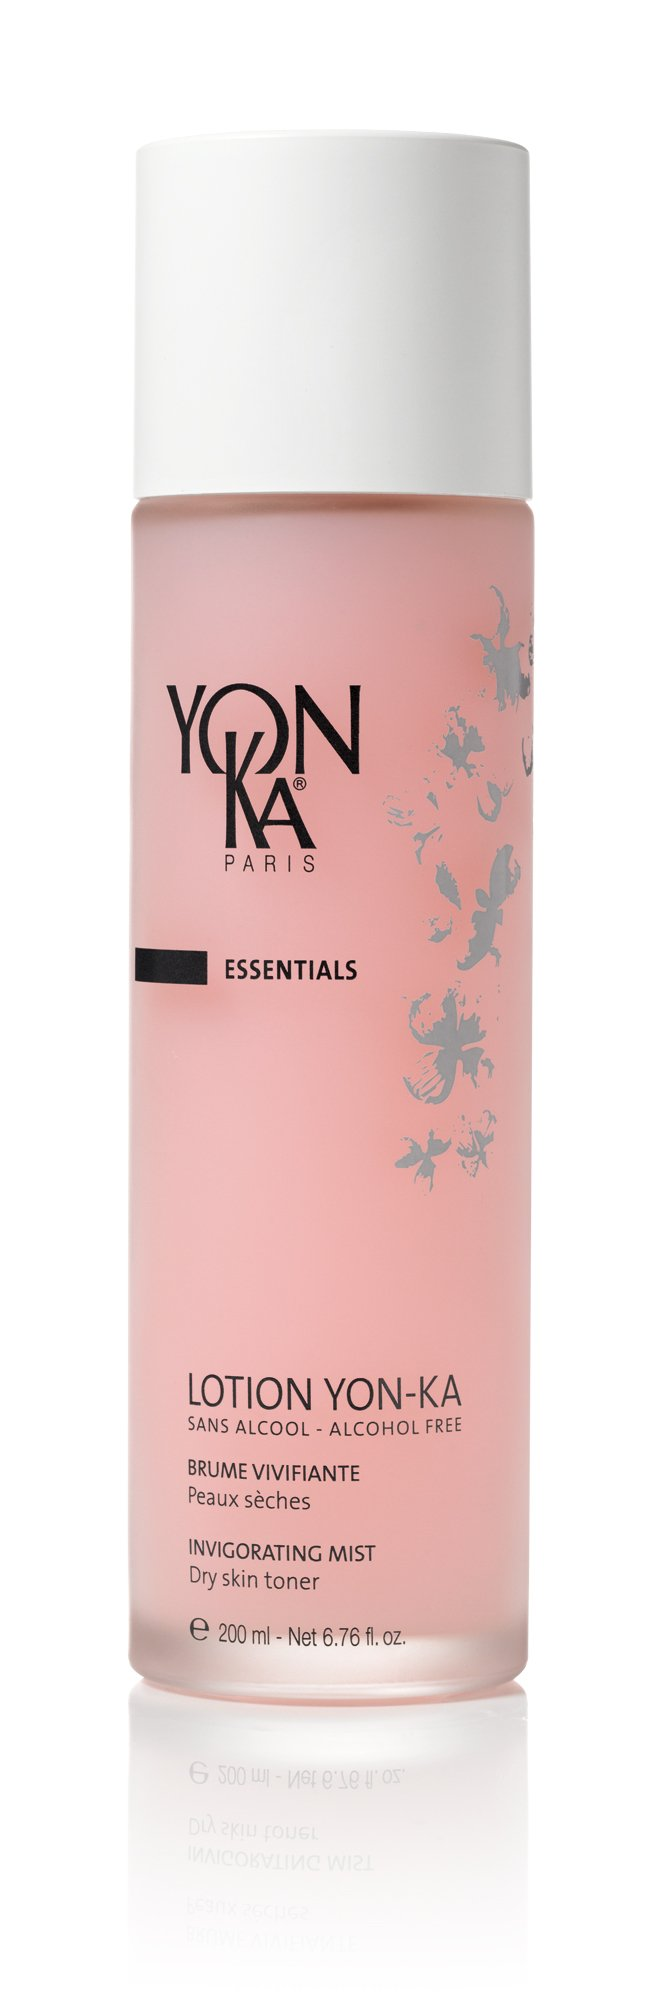 YONKA - Essential Lotion PS Invigorating Mist (6.7 Ounce / 200 Milliliter) by Yonka (Image #1)